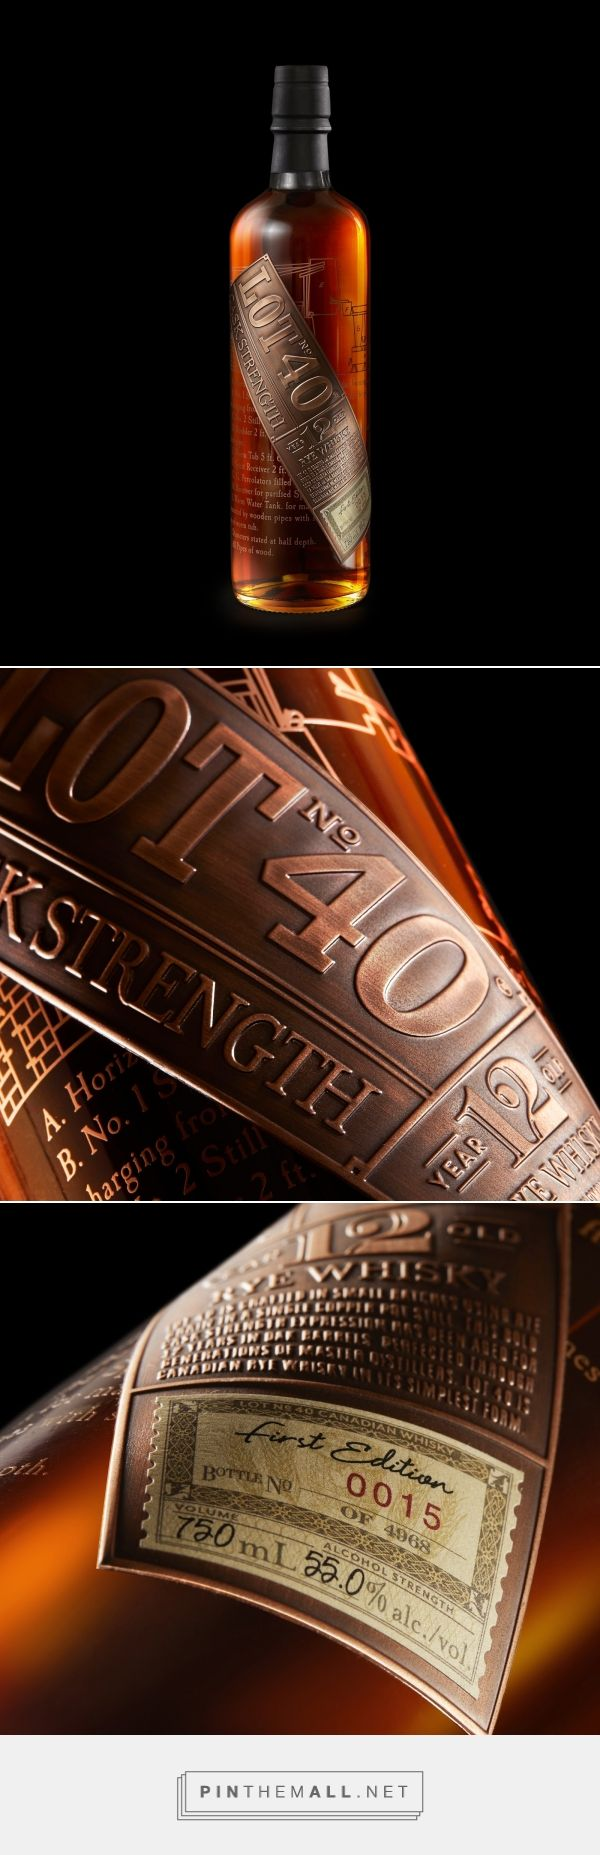 Lot 40 Cask Strength whisky packaging design by Davis - branding & design - http://www.packagingoftheworld.com/2017/12/crafted-by-elements.html